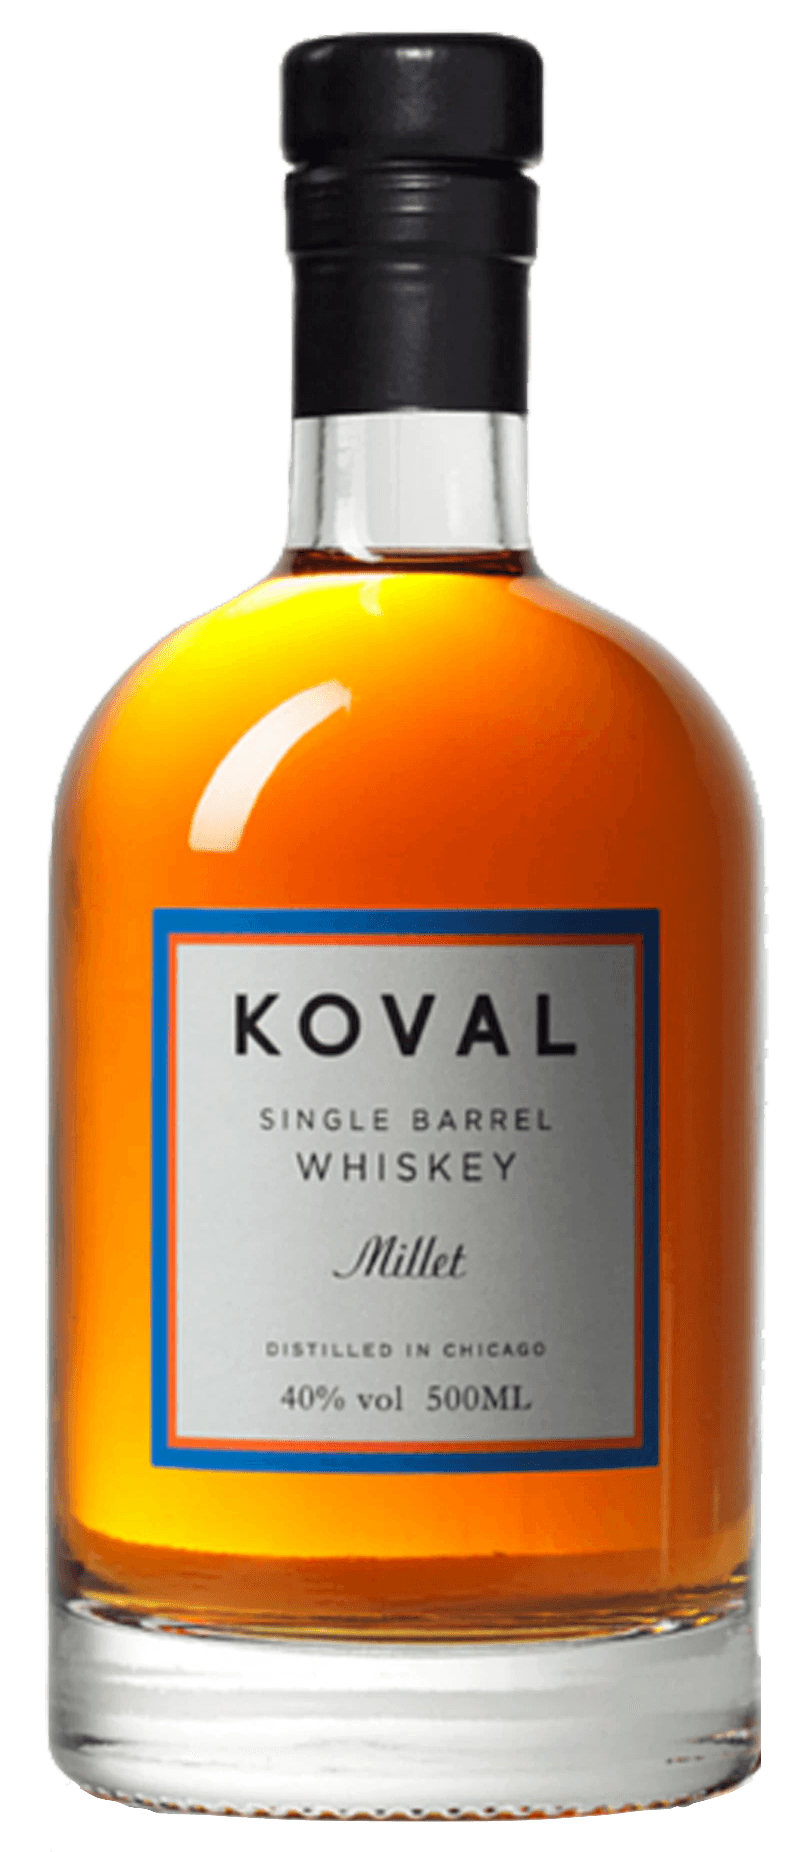 Koval Single Barrel Millet Whiskey (500ml)